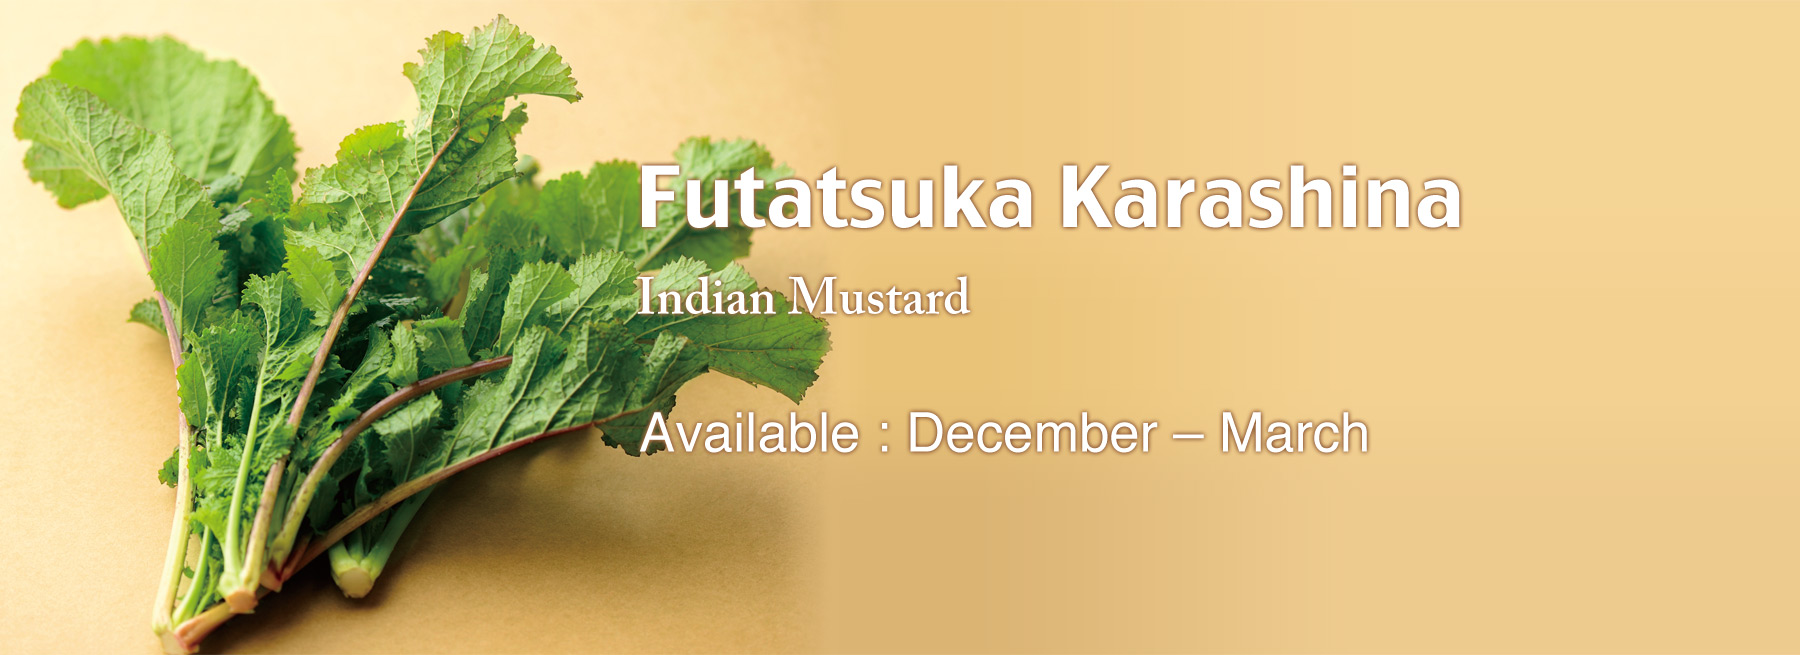 Futatsuka Karashina (Indian Mustard)